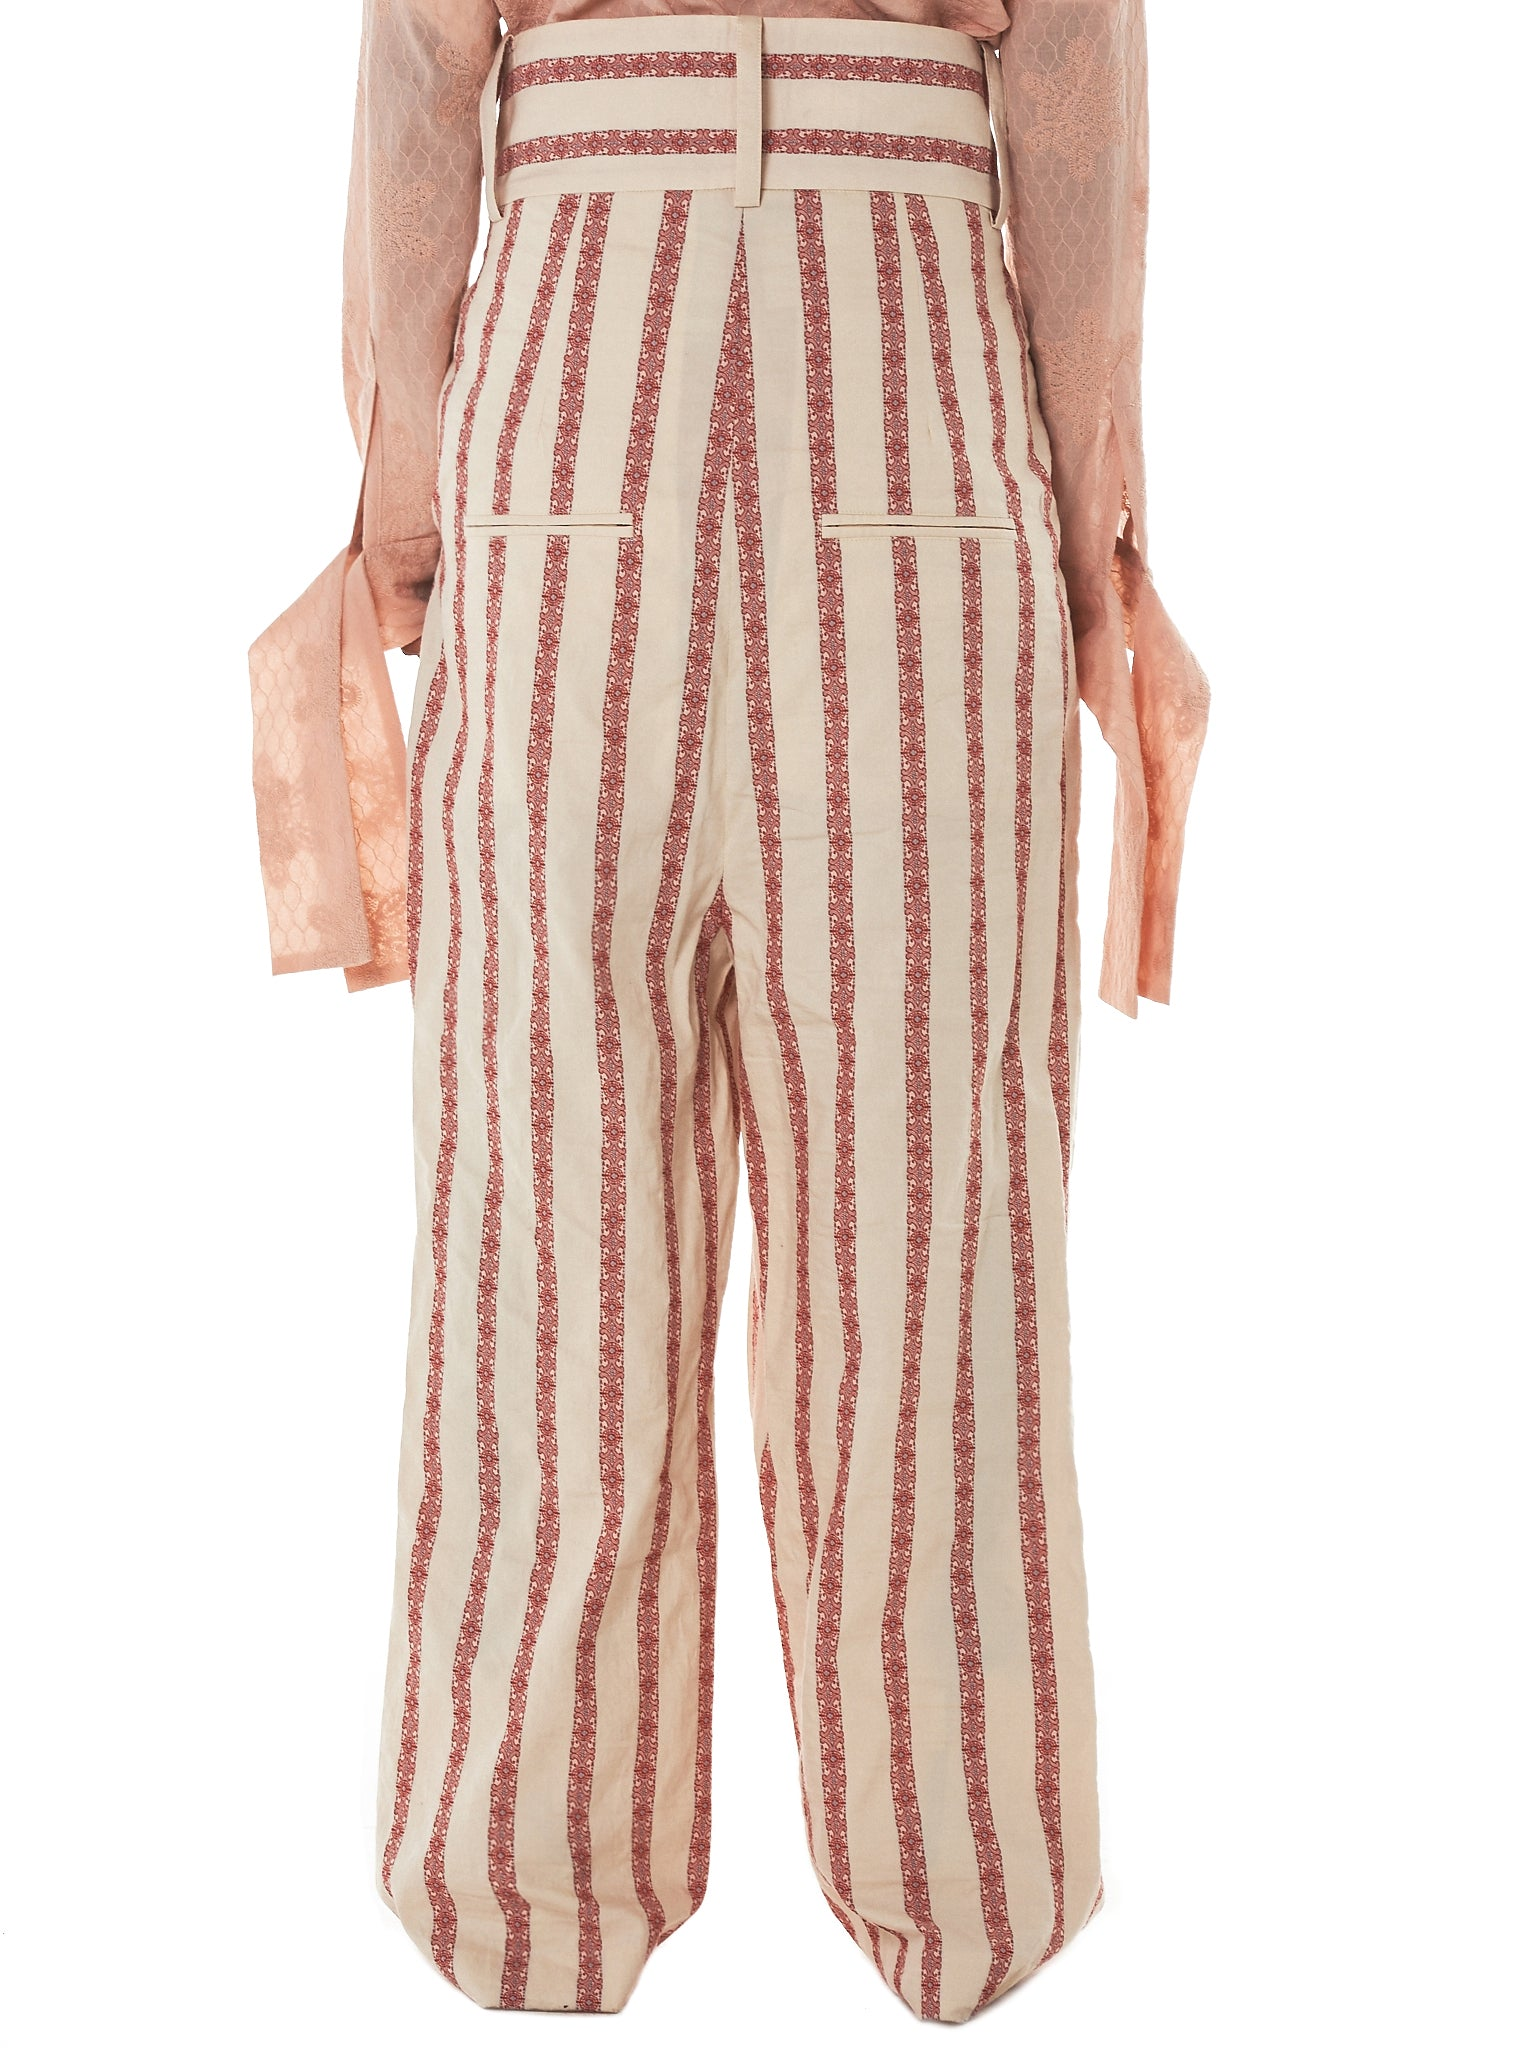 Daniel Gregory Natale Striped Trousers - Hlorenzo Back